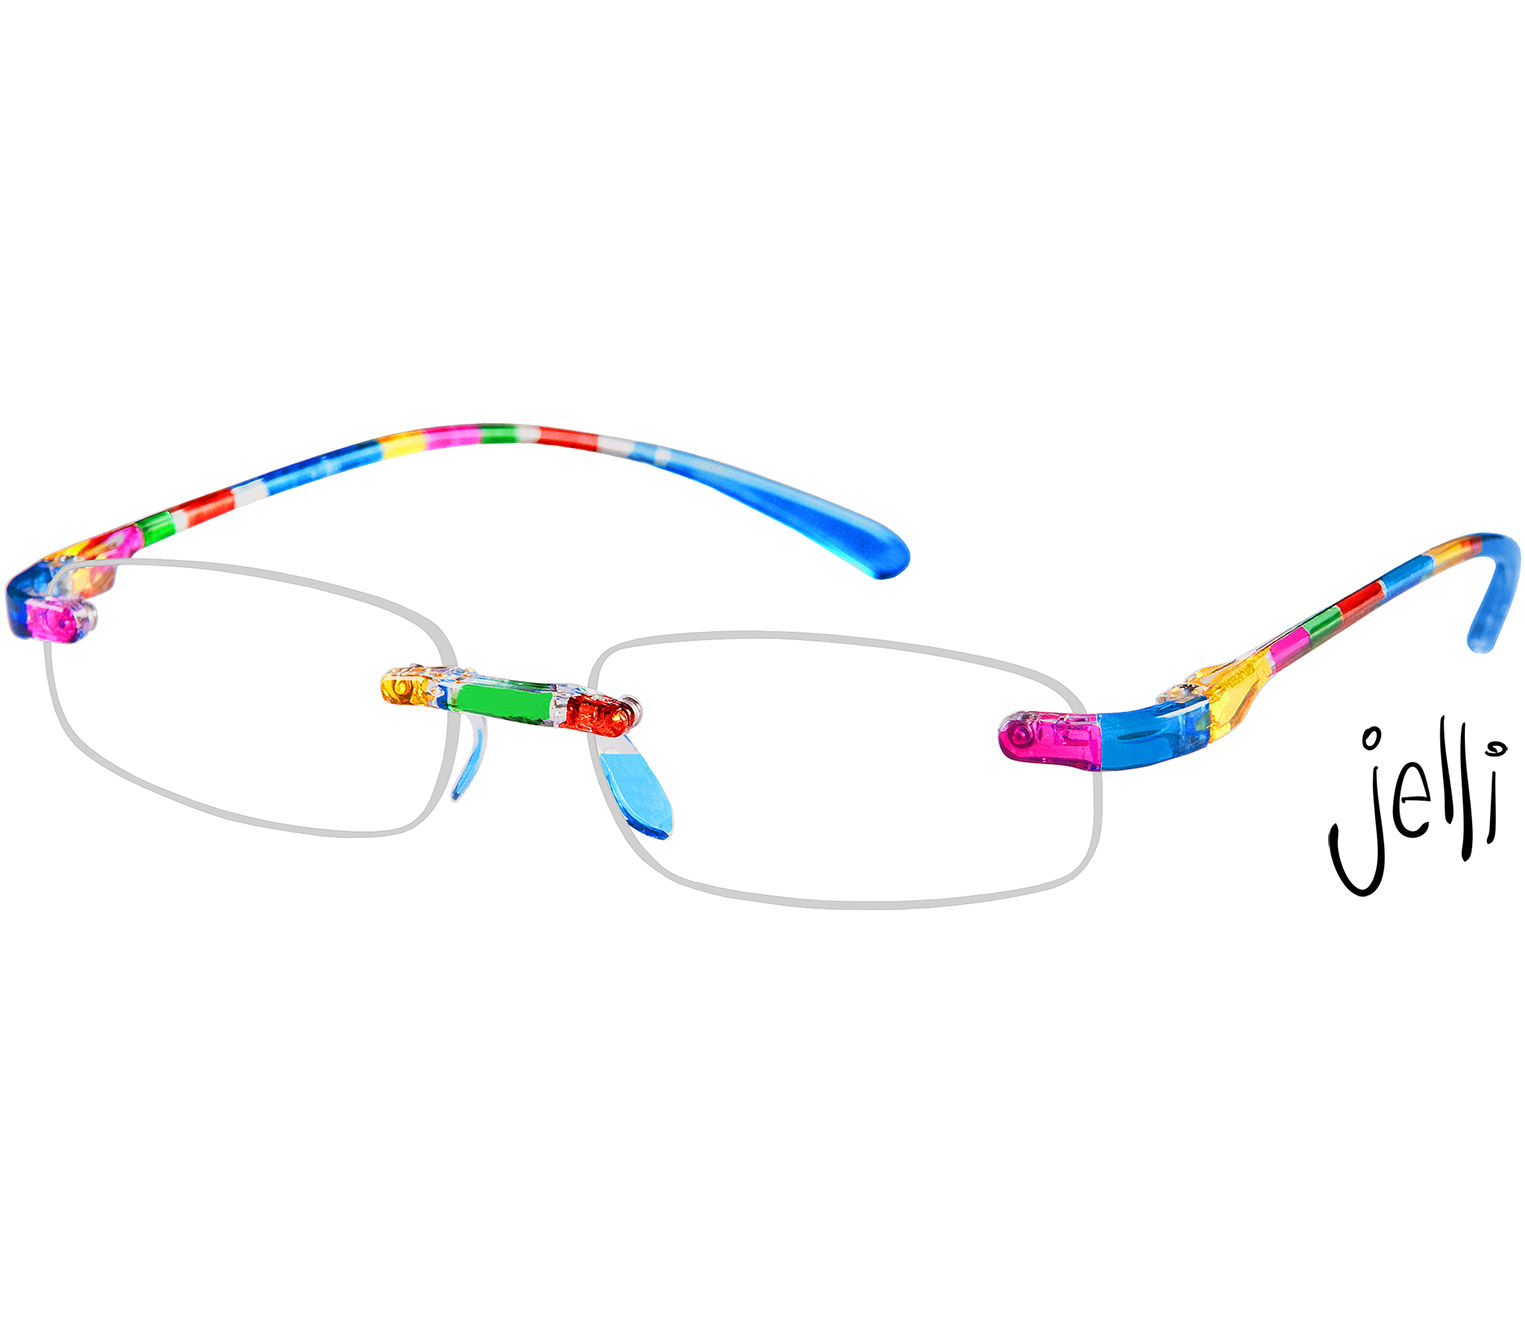 Main Image (Angle) - Jelli (Multi-coloured) Rimless Reading Glasses